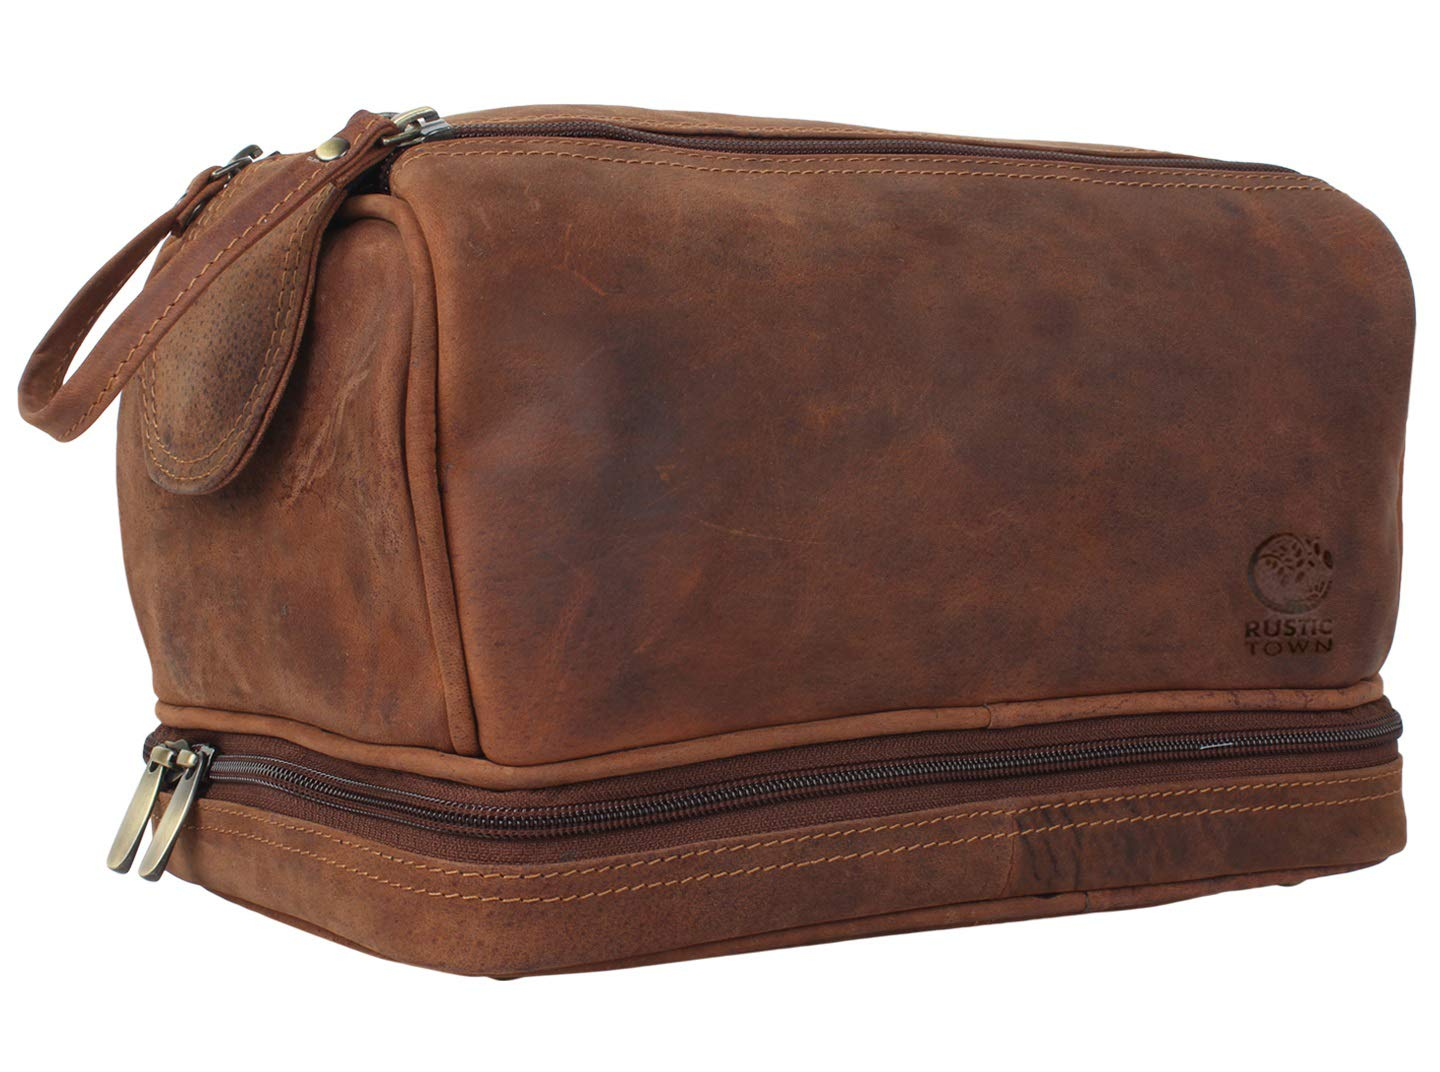 Genuine Leather Travel Toiletry Bag - Dopp Kit Organizer By Rustic Town by Rustic Town